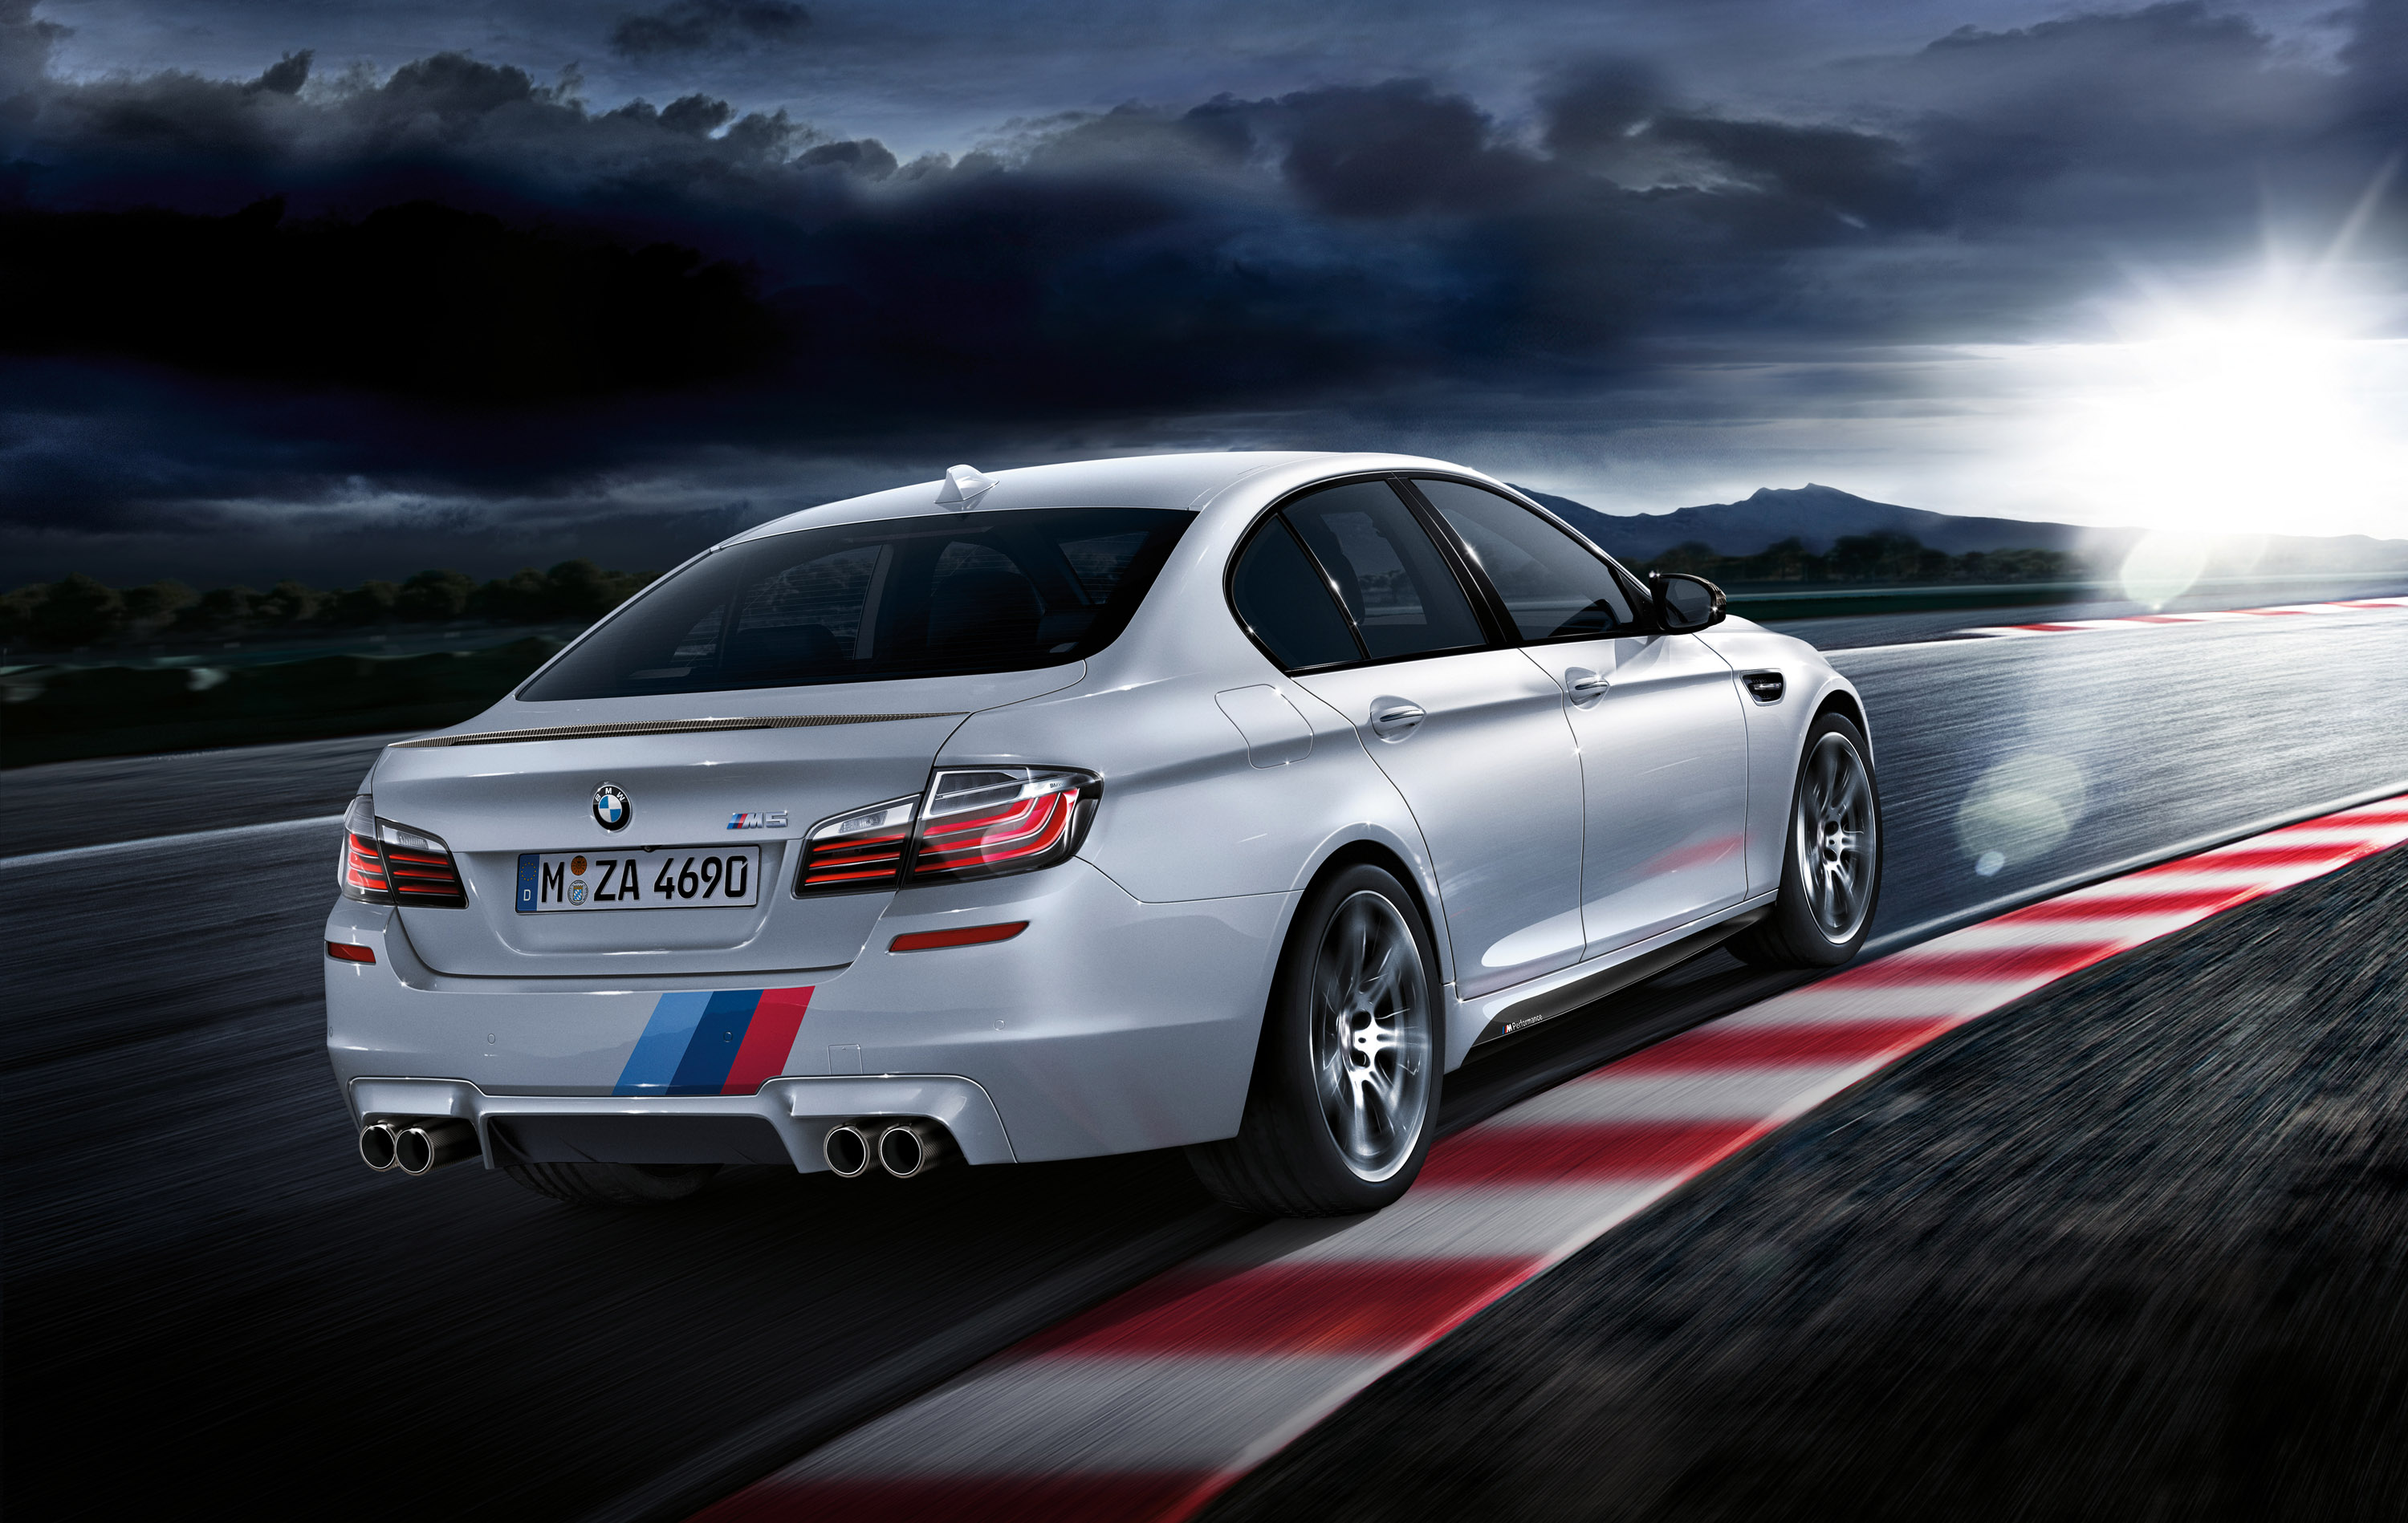 2014 Bmw M5 And M6 M Performance Accessories